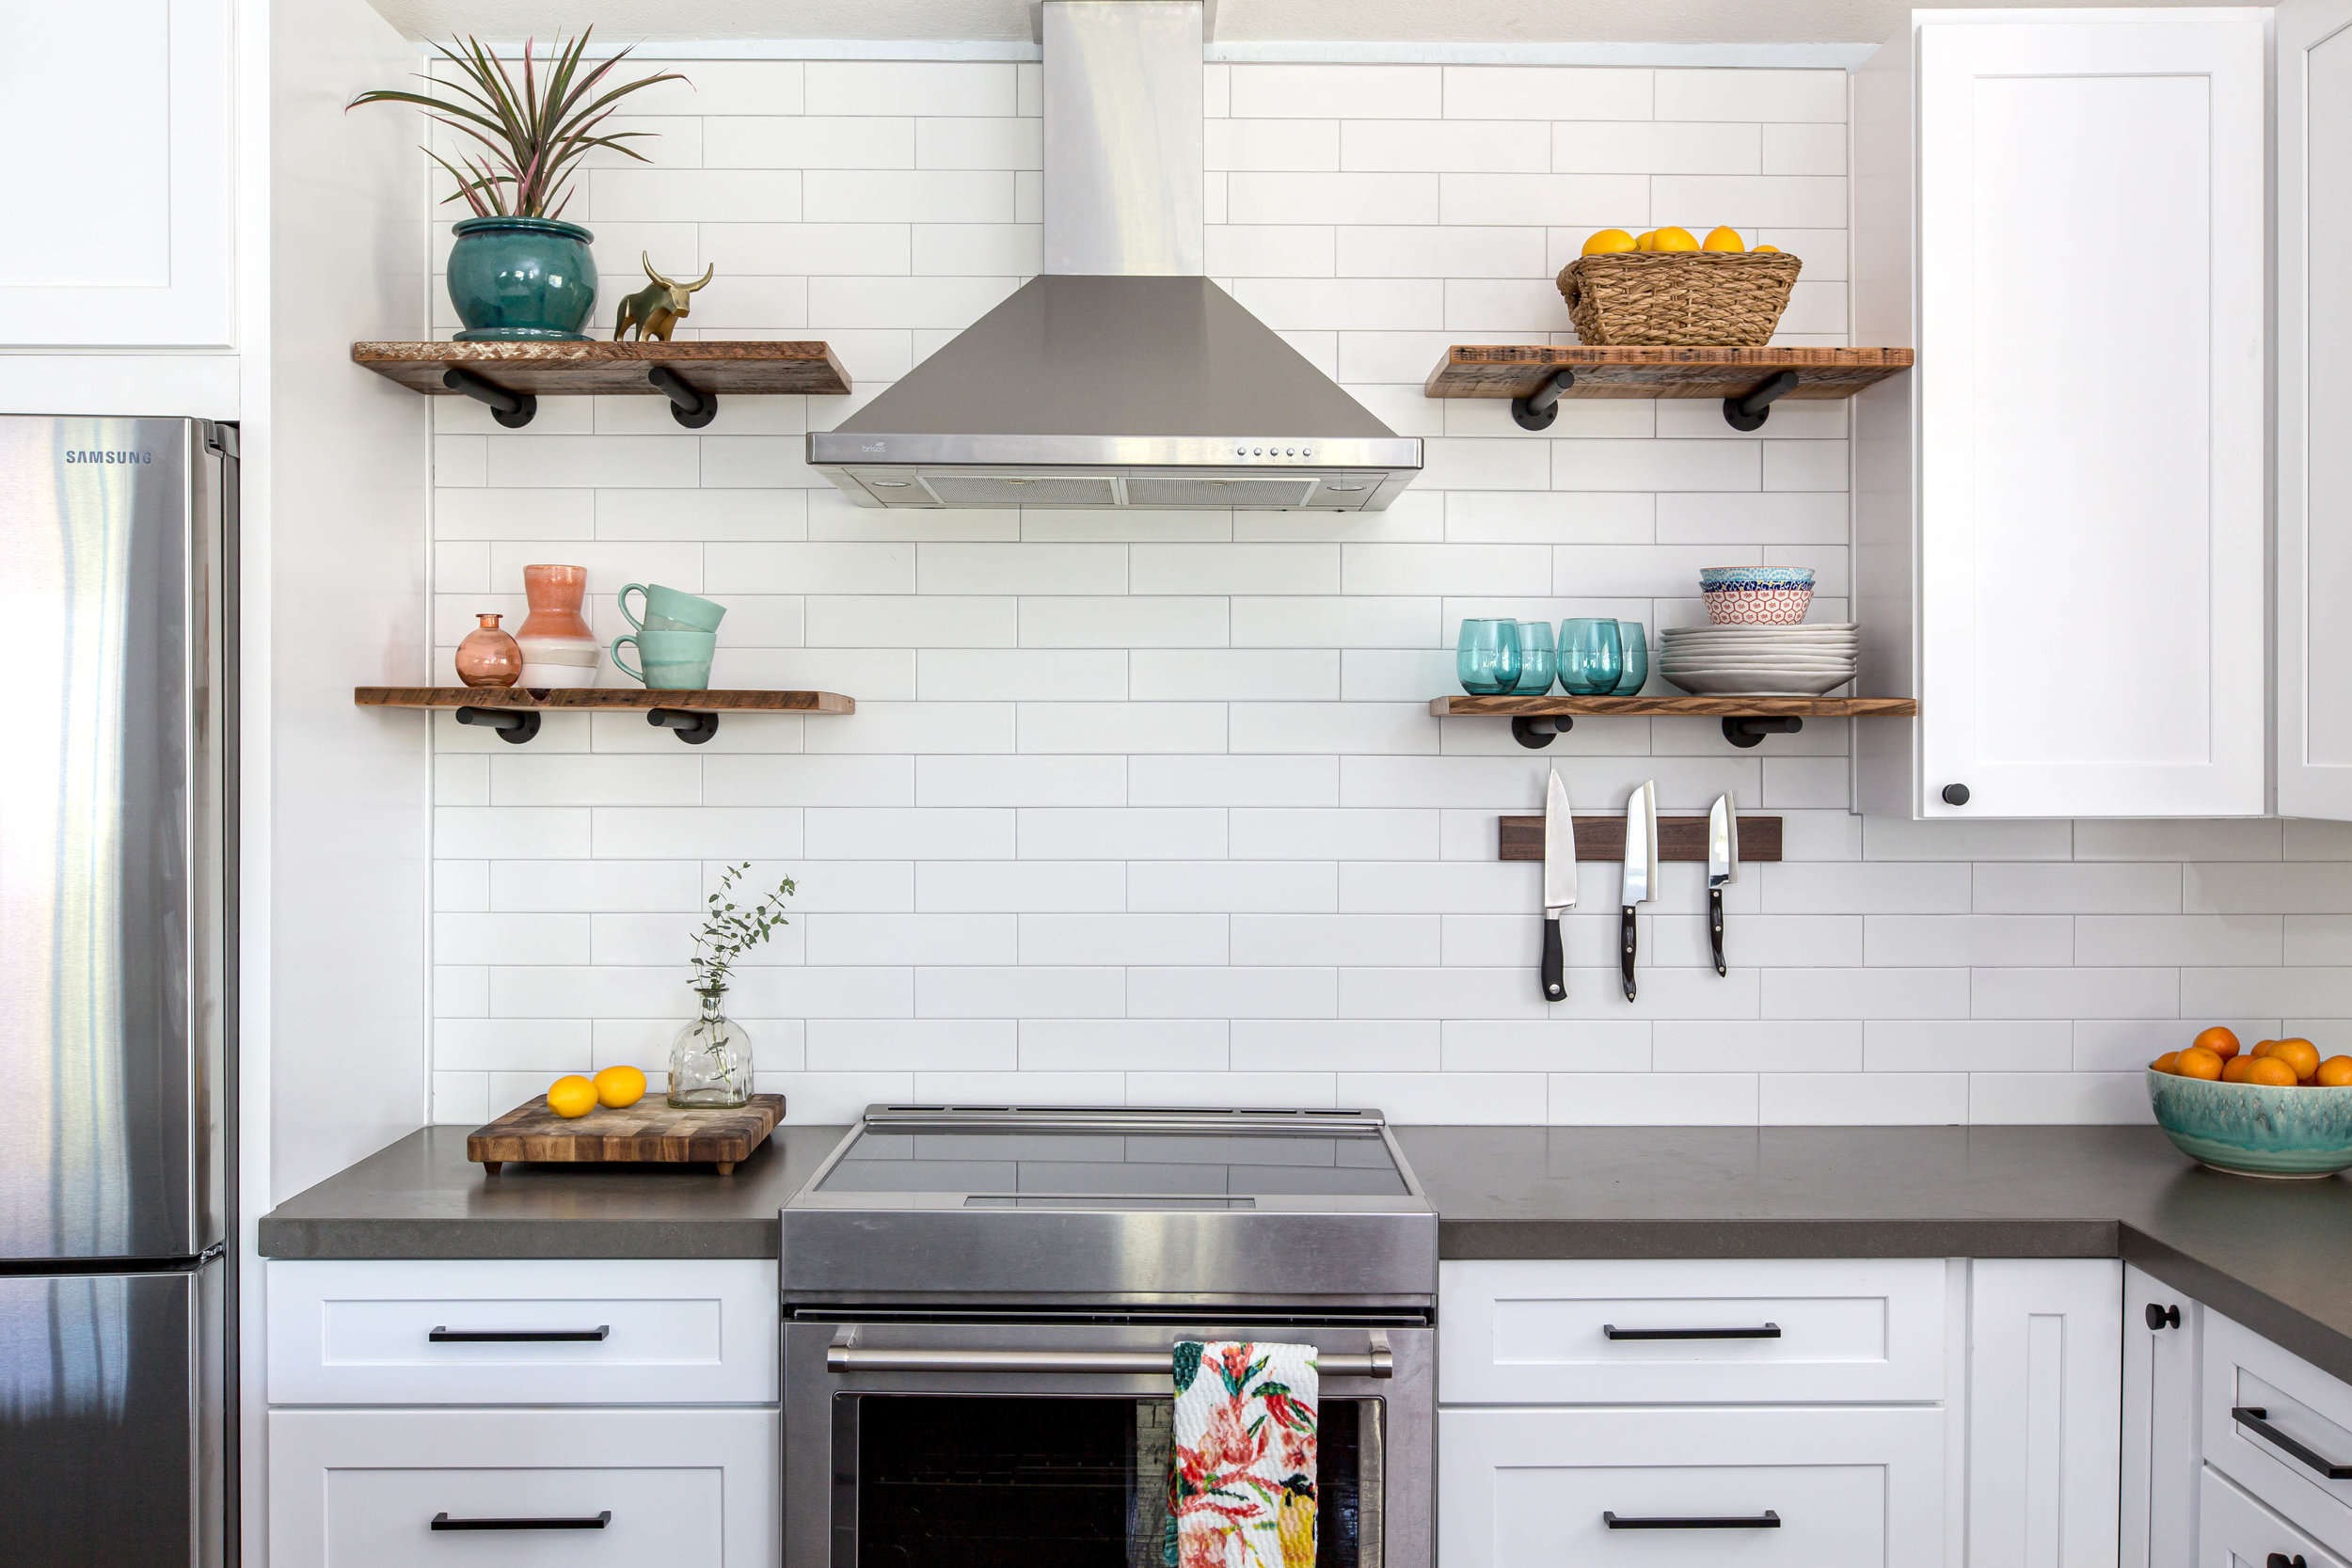 subway tile kitchen.jpg